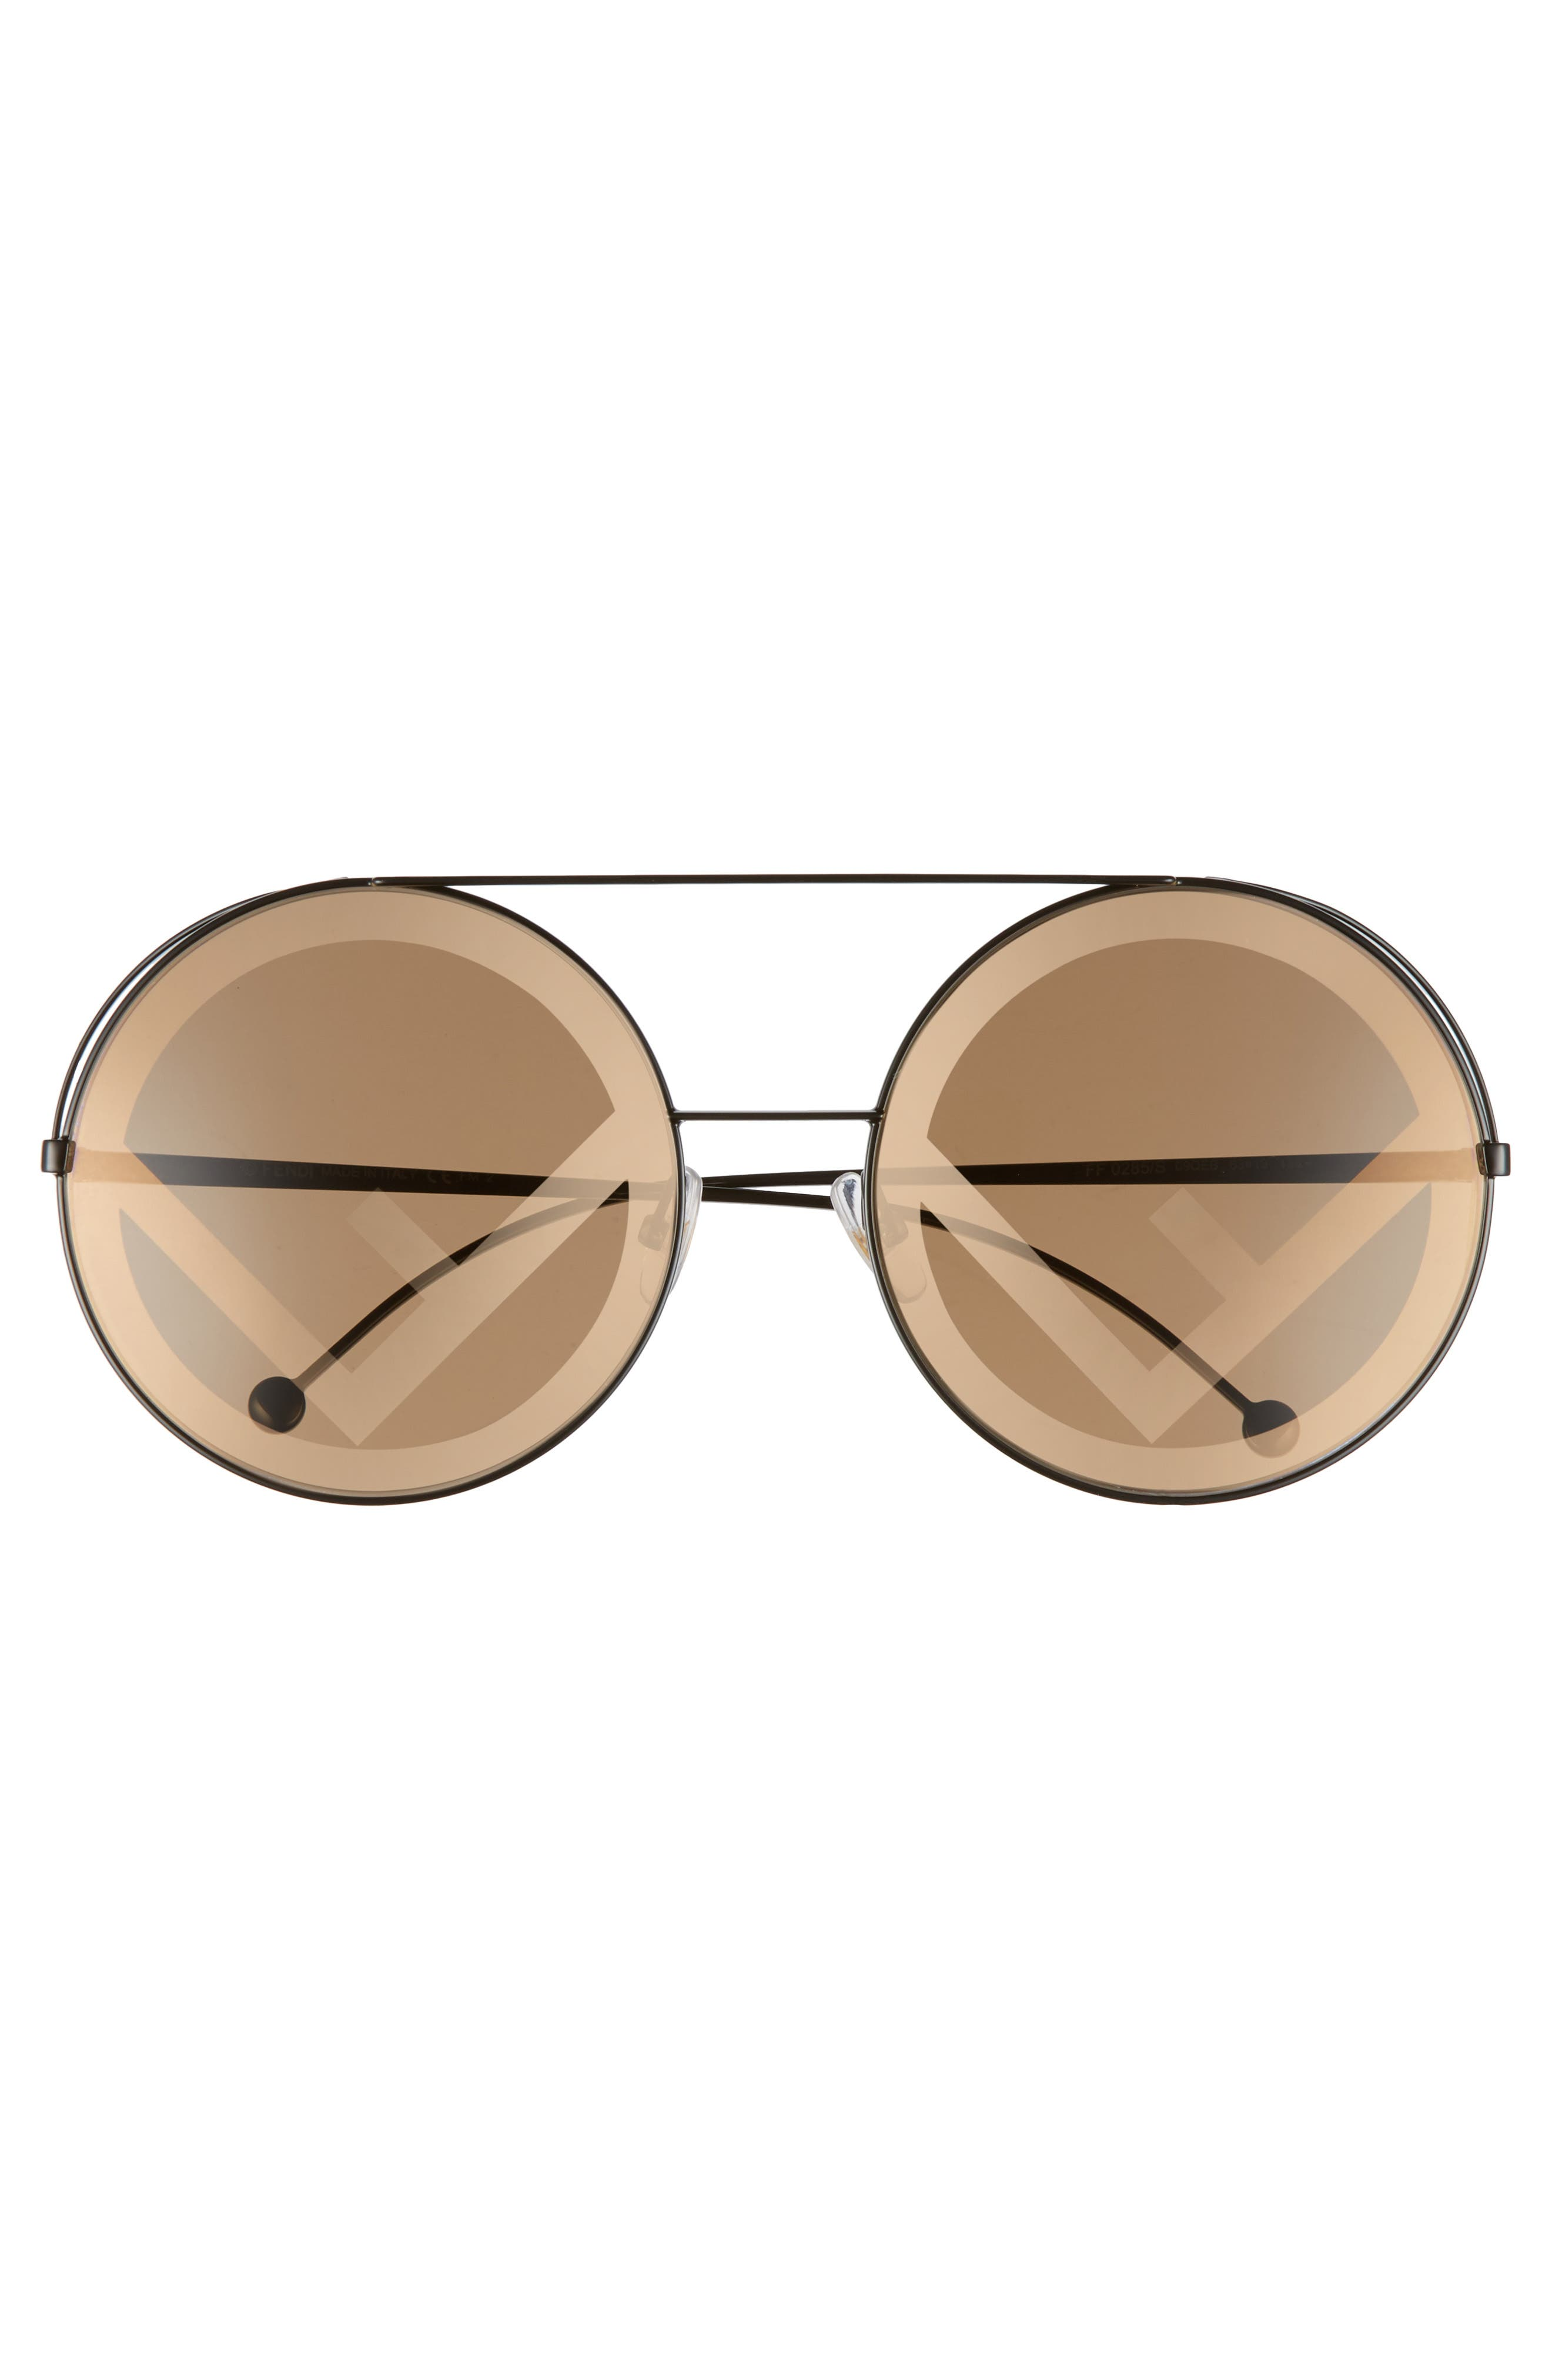 Run Away 63mm Round Sunglasses,                             Alternate thumbnail 3, color,                             Brown